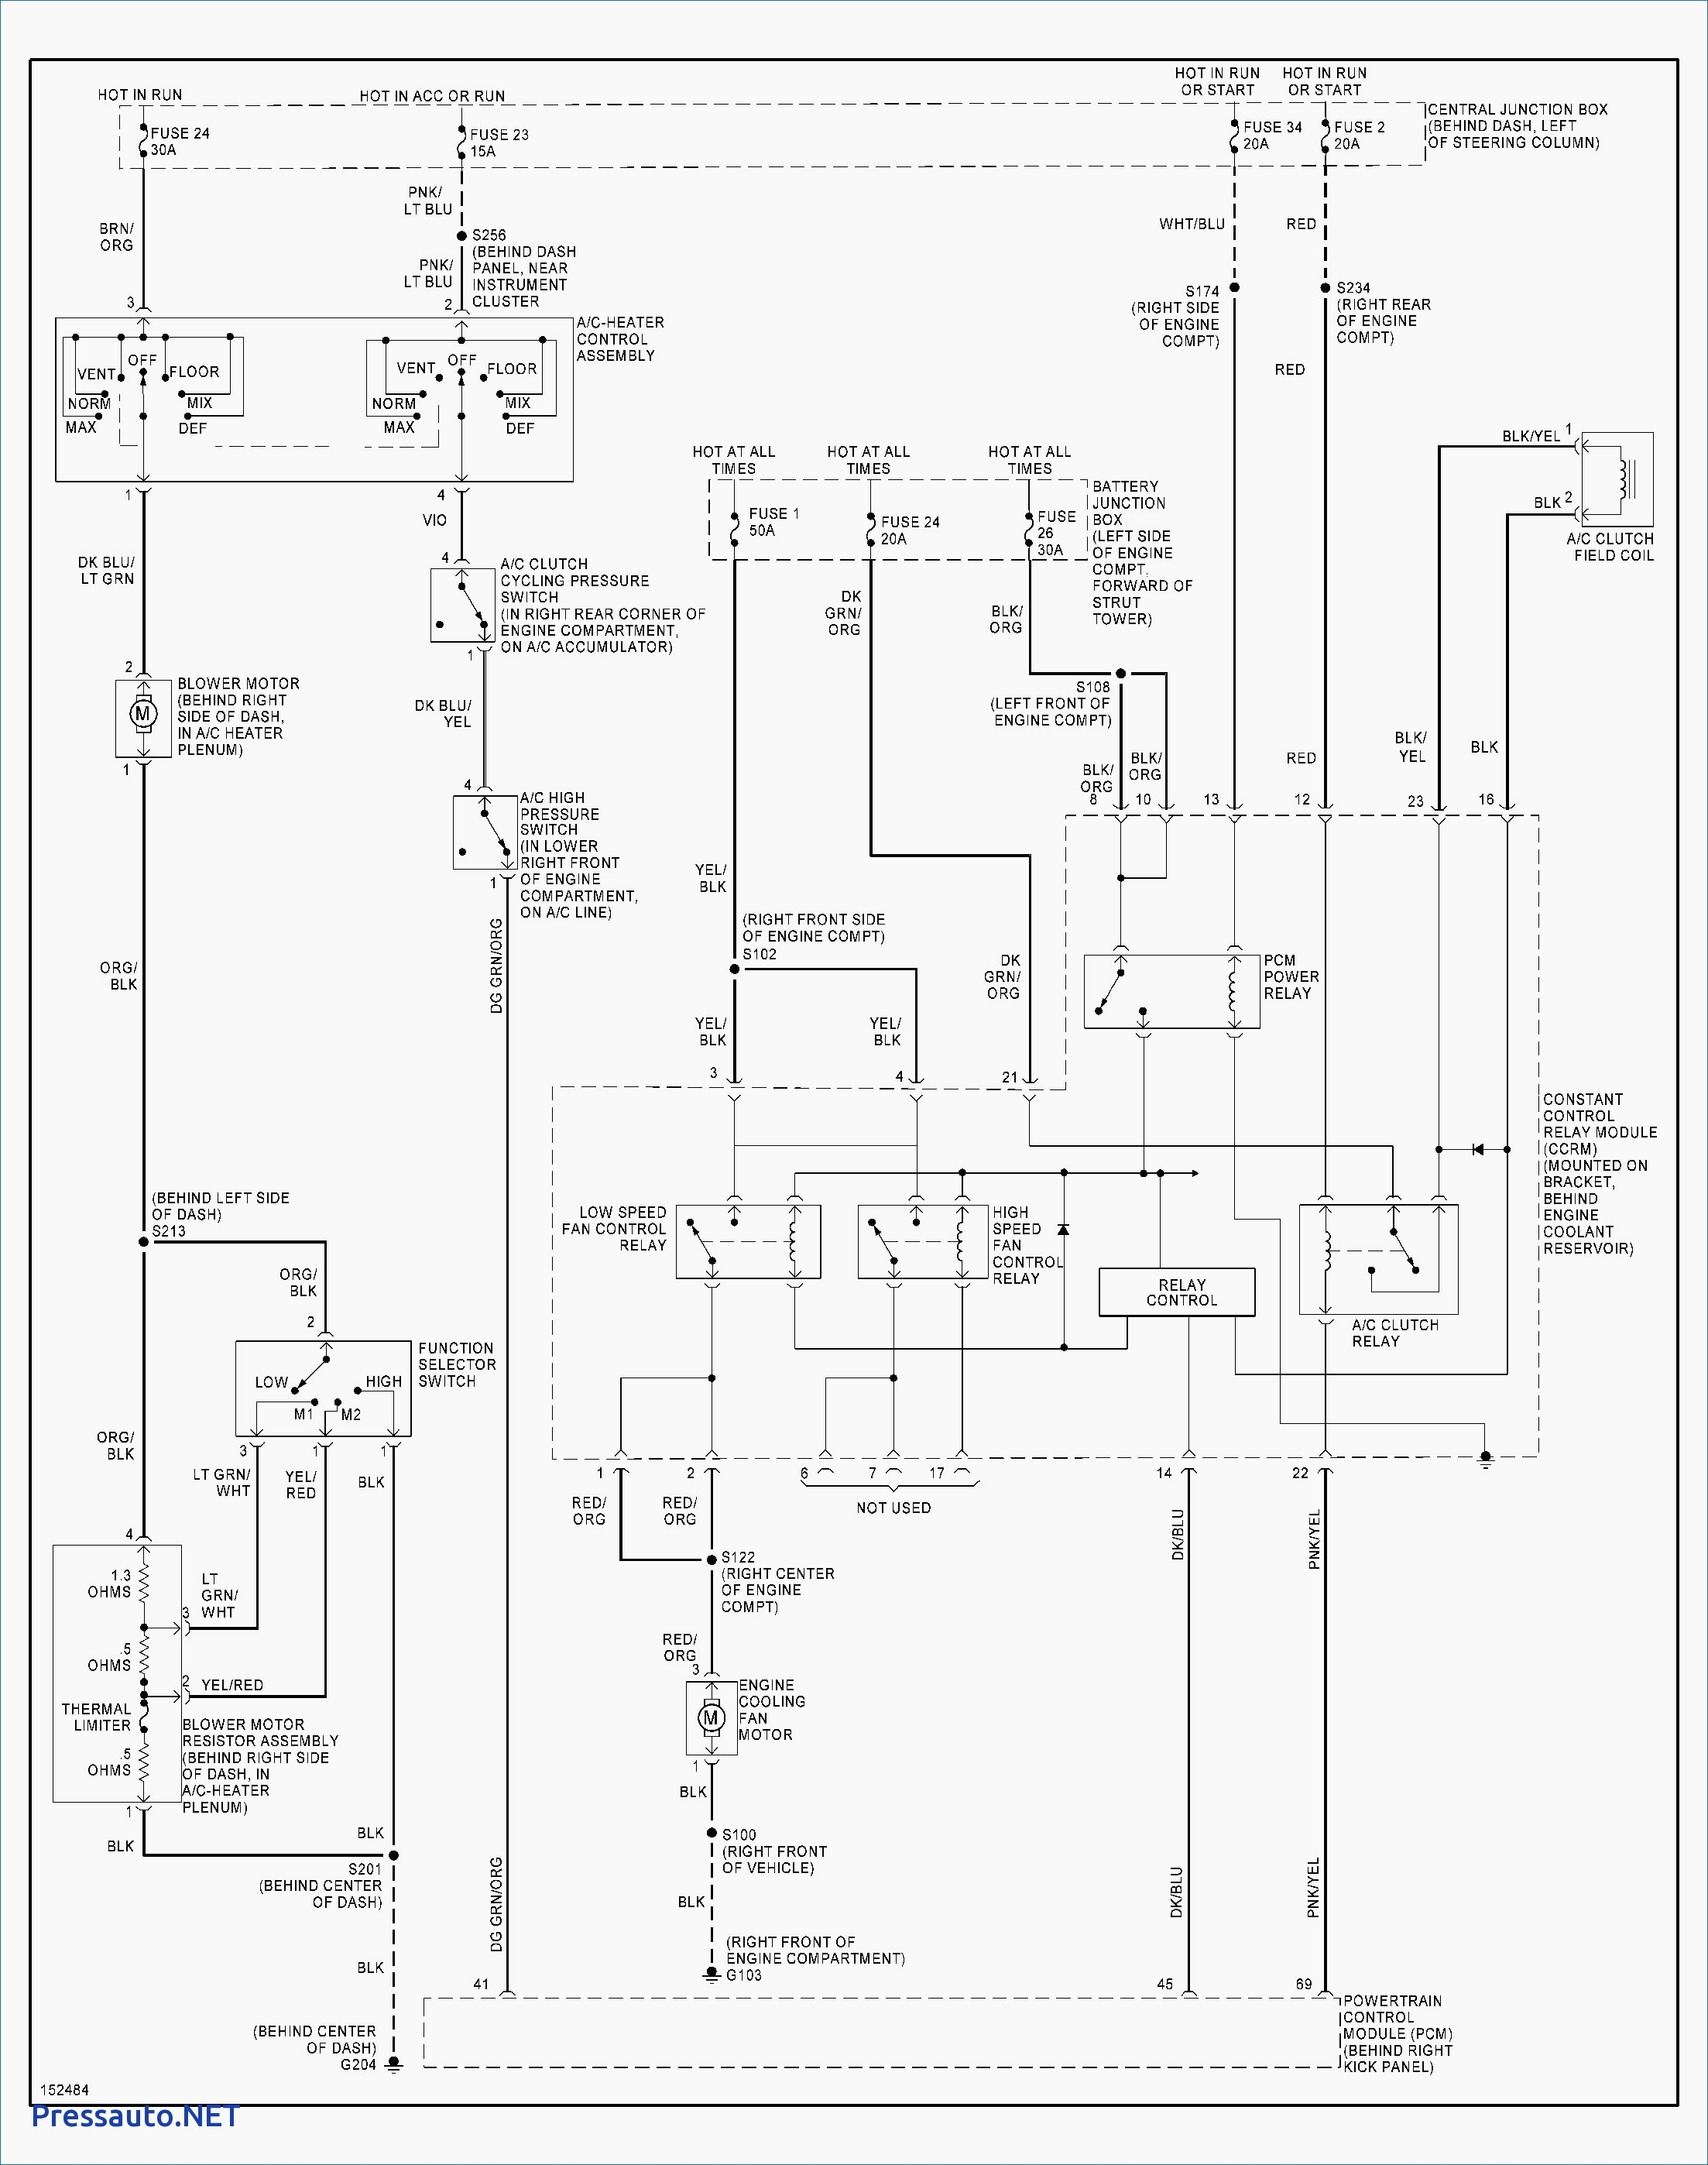 wiring diagram for a well pressure switch